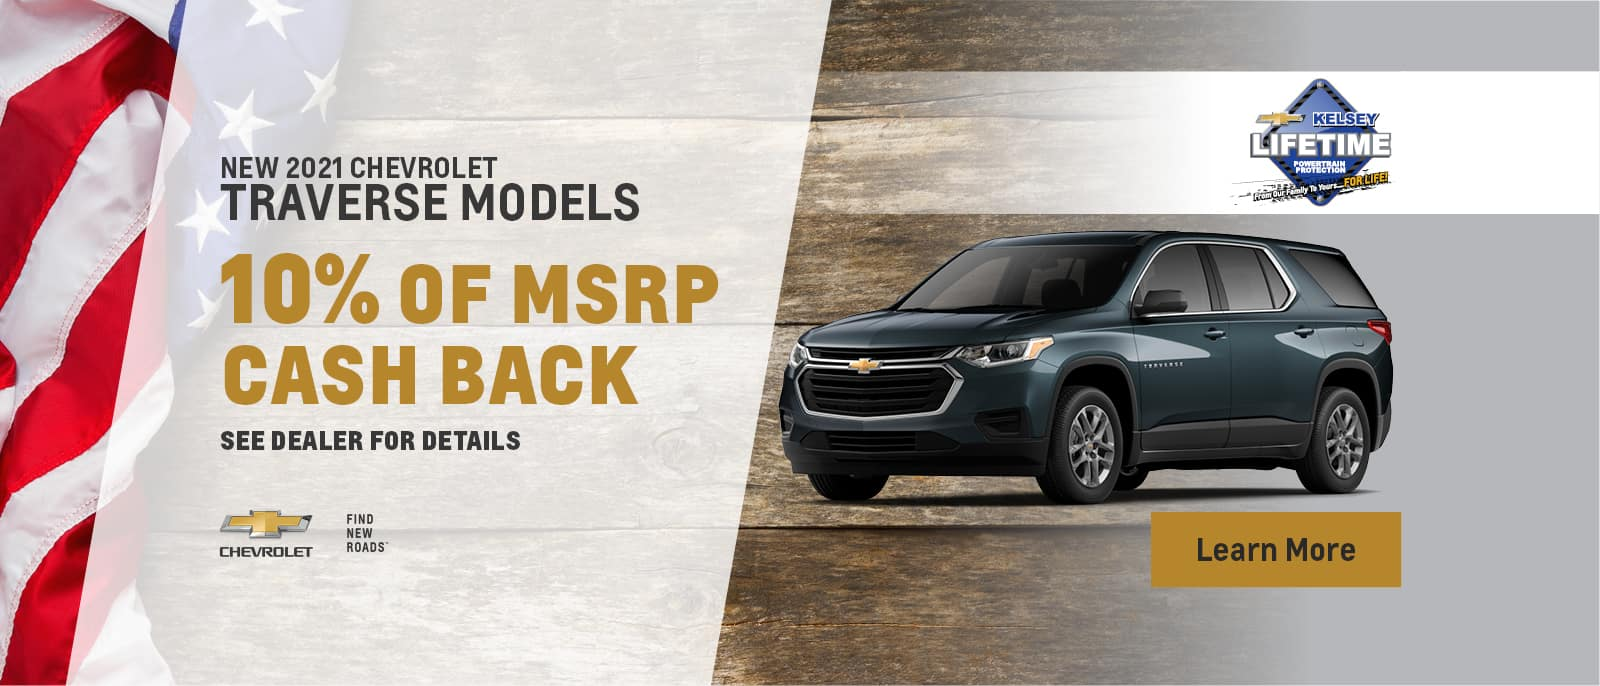 2021 Chevy Traverse Models